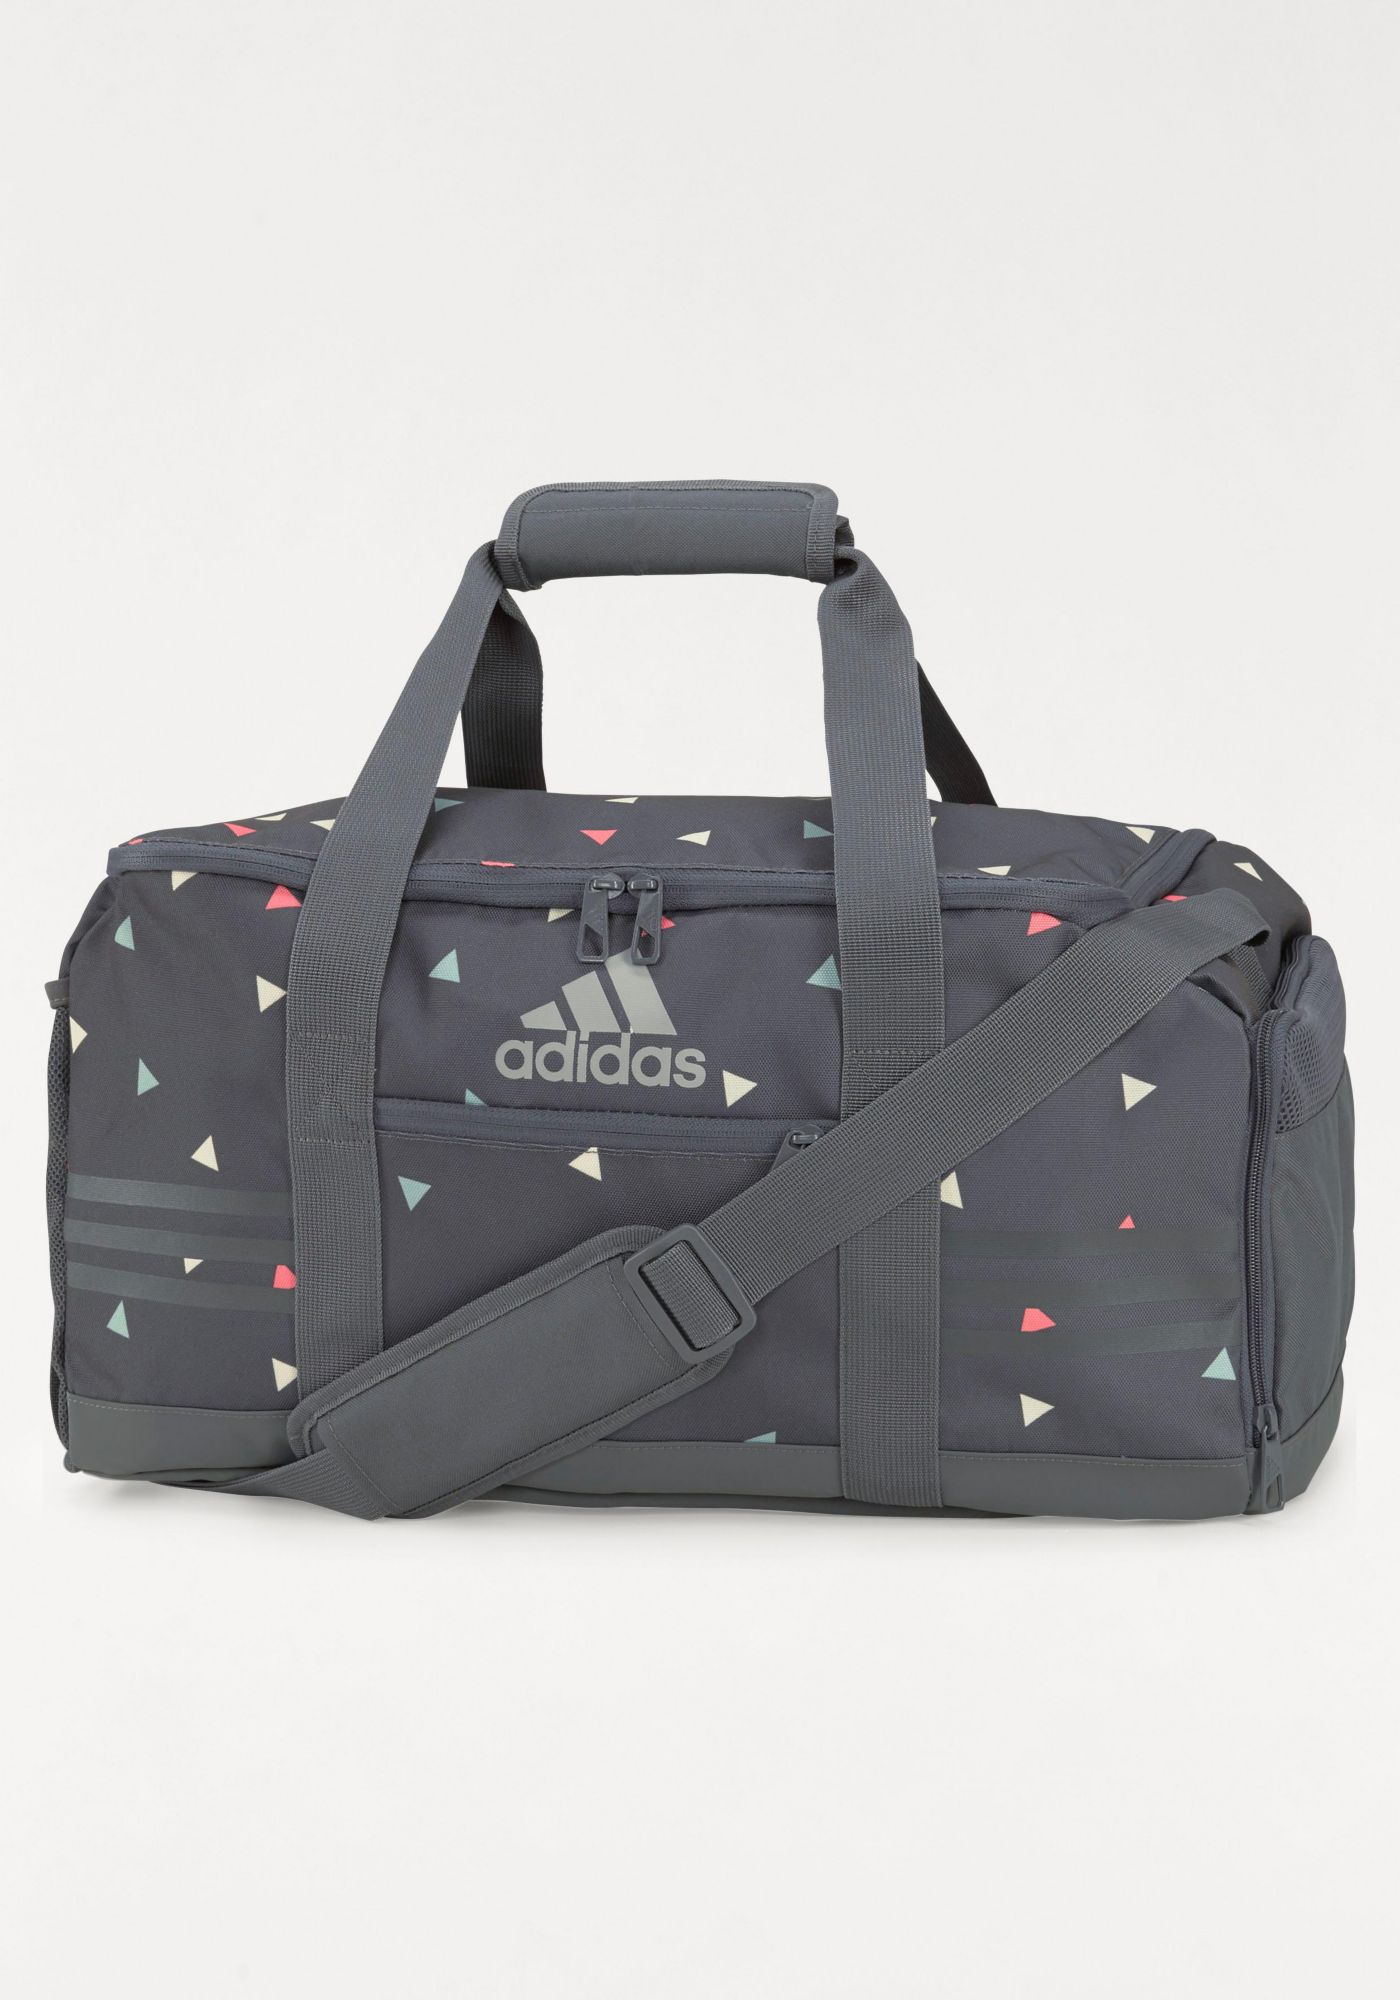 ADIDAS PERFORMANCE adidas Performance Sporttasche »3 STRIPES PERFORMANCE TEAMBAG WOMEN´S S«